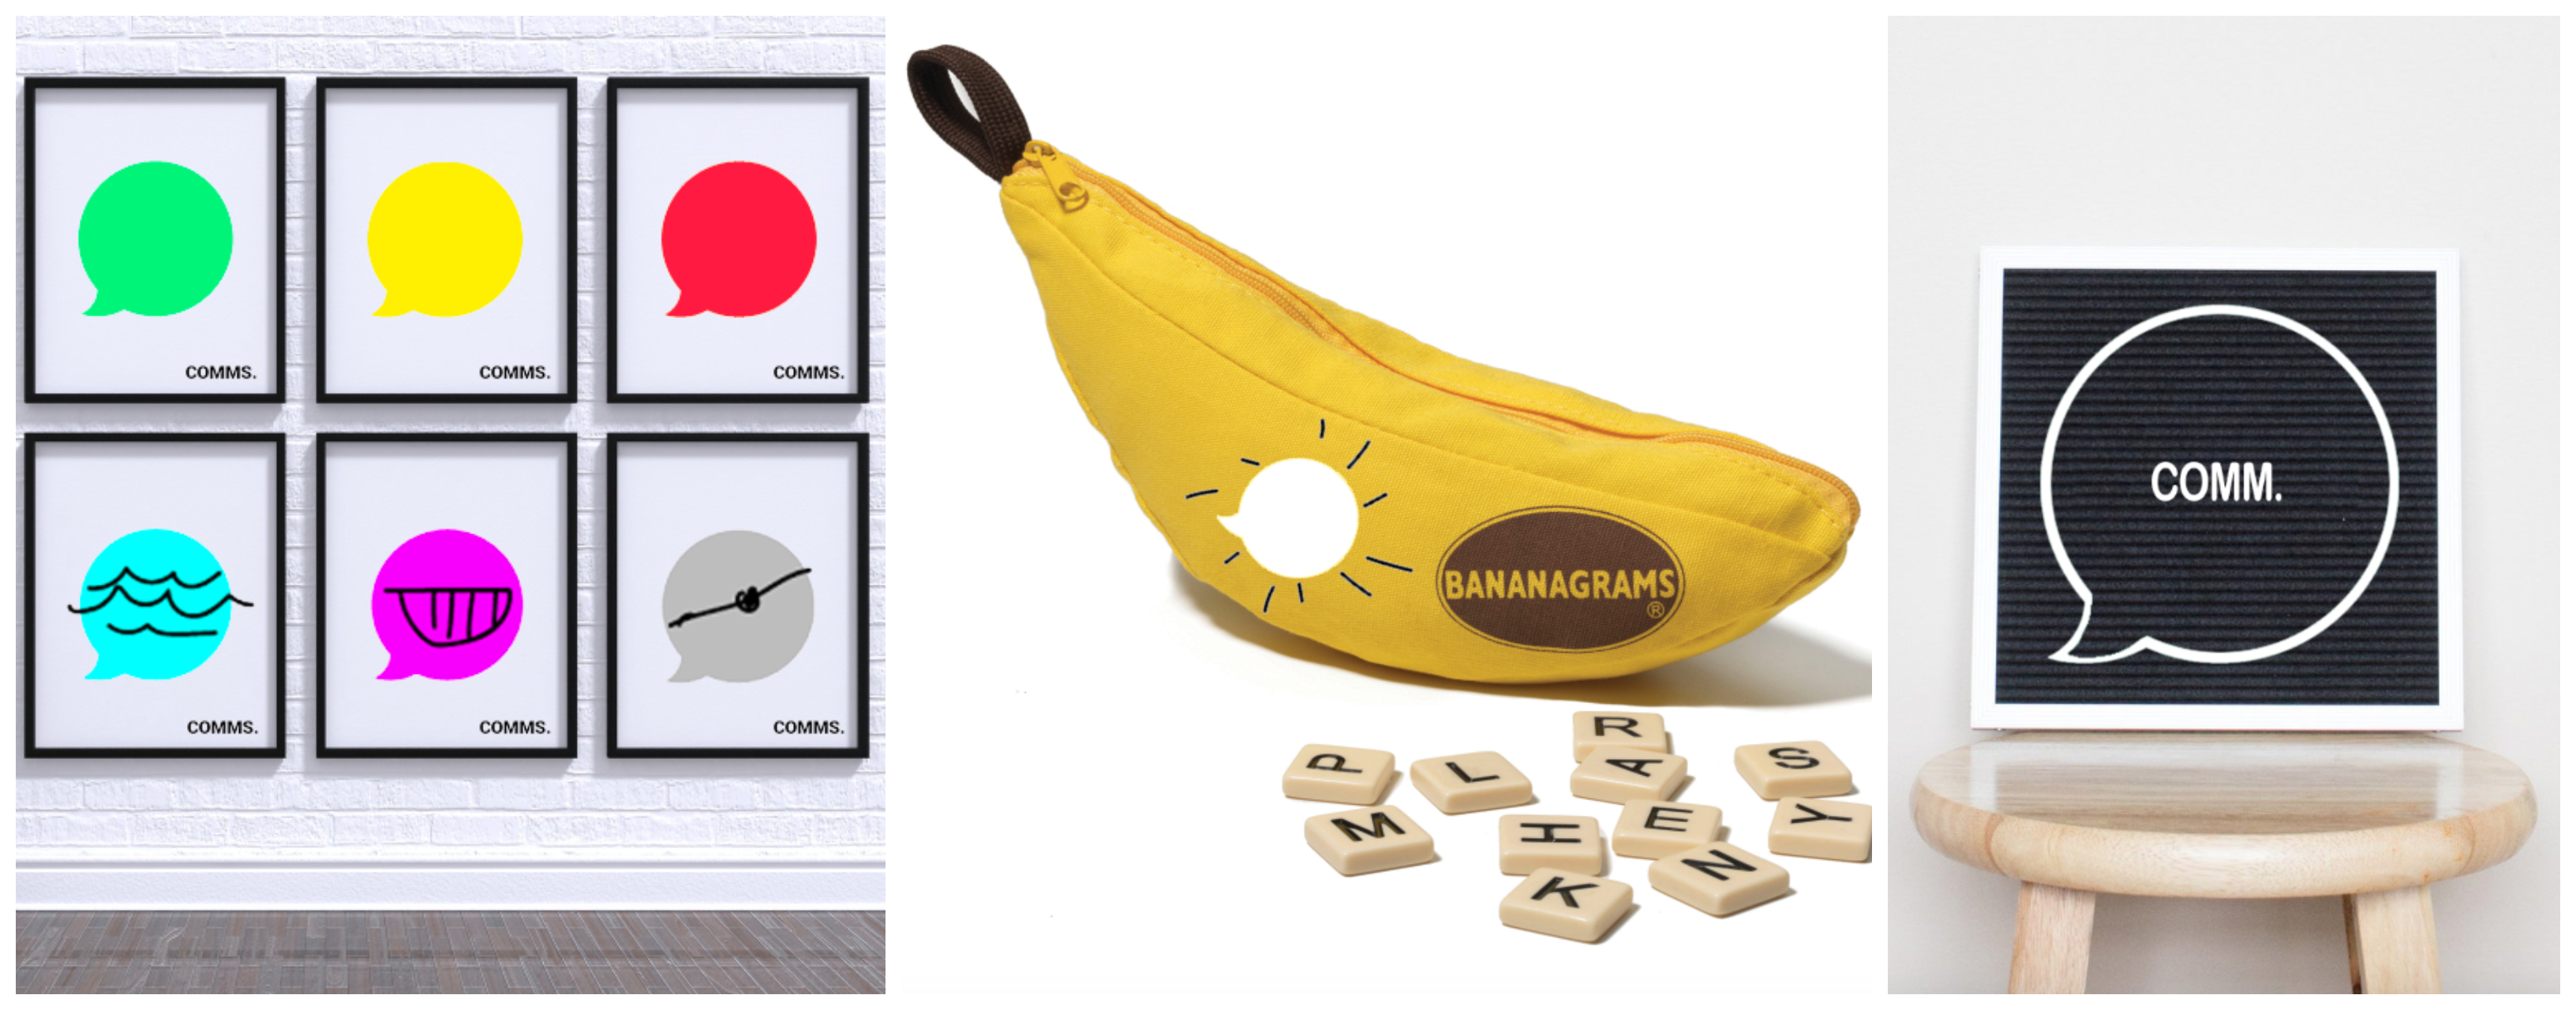 Whiteboard with Dot-Bubble Design, Bananagrams game, Black Felt-board with Letters